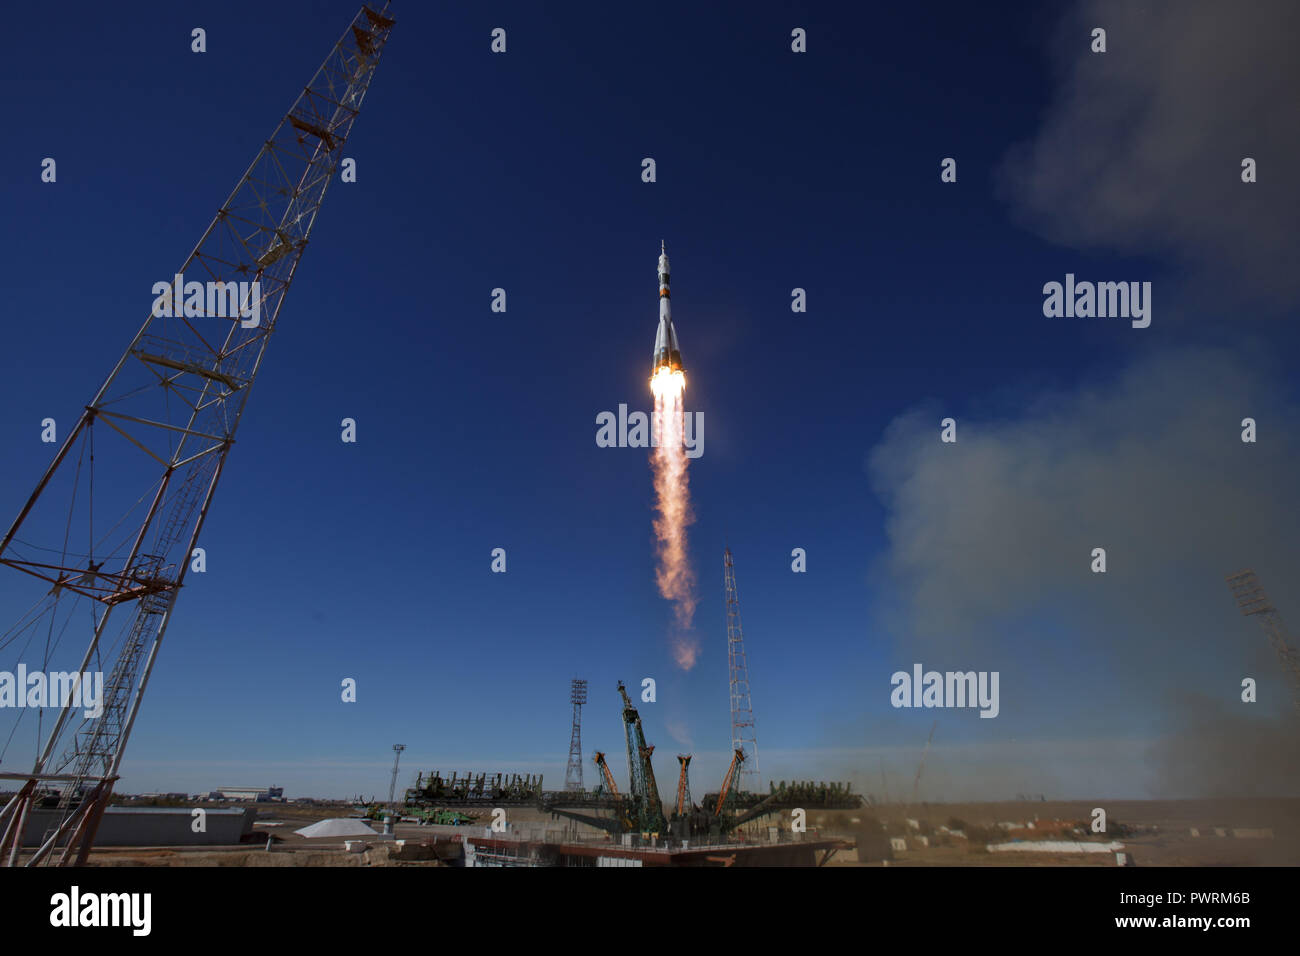 The Soyuz MS-10 spacecraft is launched with Expedition 57 Flight Engineer Nick Hague of NASA and Flight Engineer Alexey Ovchinin of Roscosmos, Thursday, Oct. 11, 2018 at the Baikonur Cosmodrome in Kazakhstan.  During the Soyuz spacecraft's climb to orbit, an anomaly occurred, resulting in an abort downrange. The crew was quickly recovered and is in good condition. - Stock Image